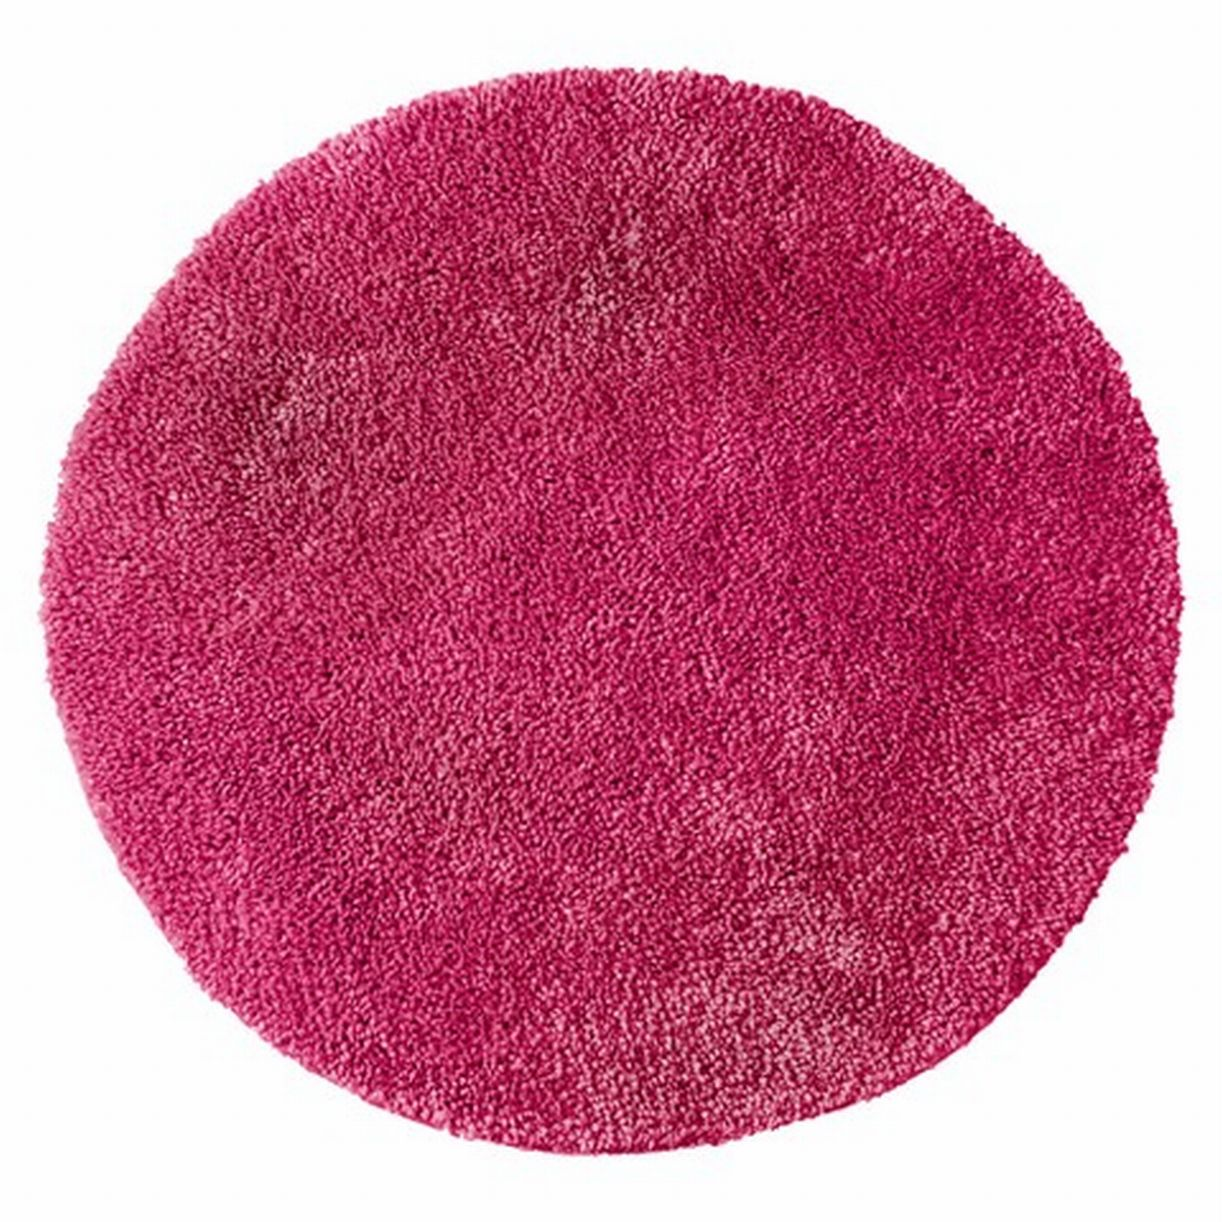 Room Essentials Dashing Pink Skid Resistant Throw Bath Rug Accent Mat 24 Round